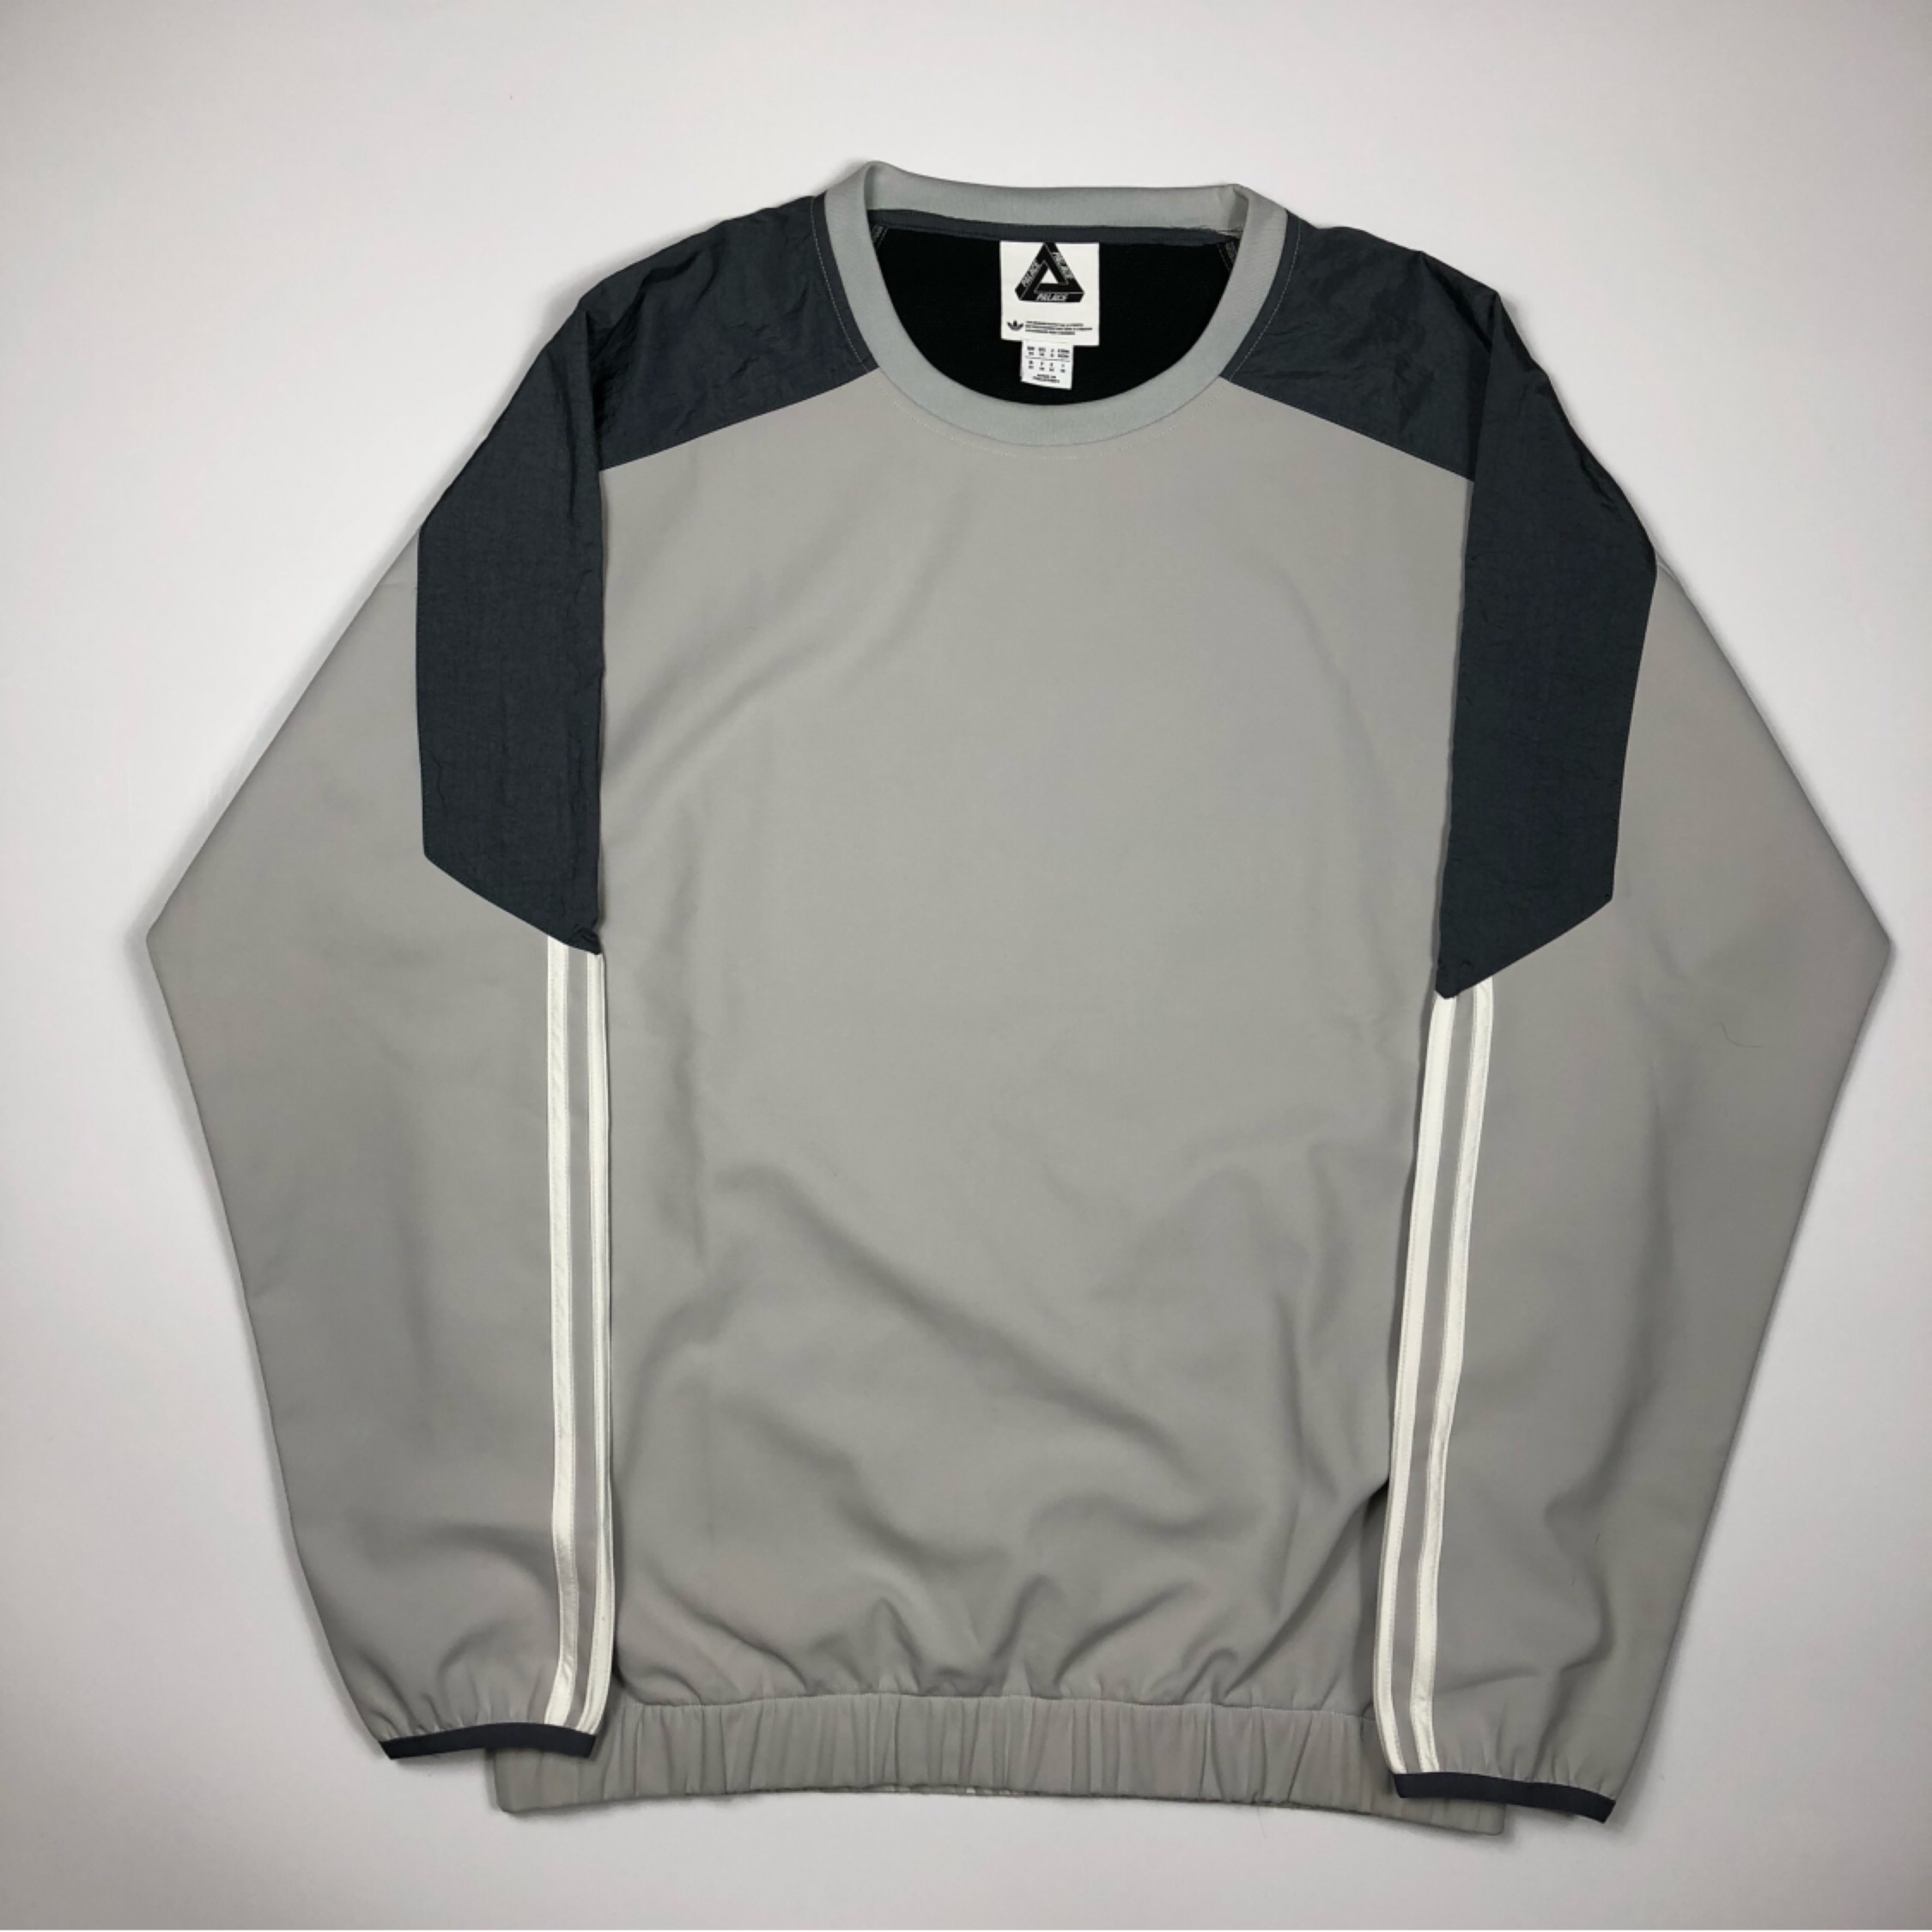 Palace X Adidas Tri Ferg Training Top Pullover